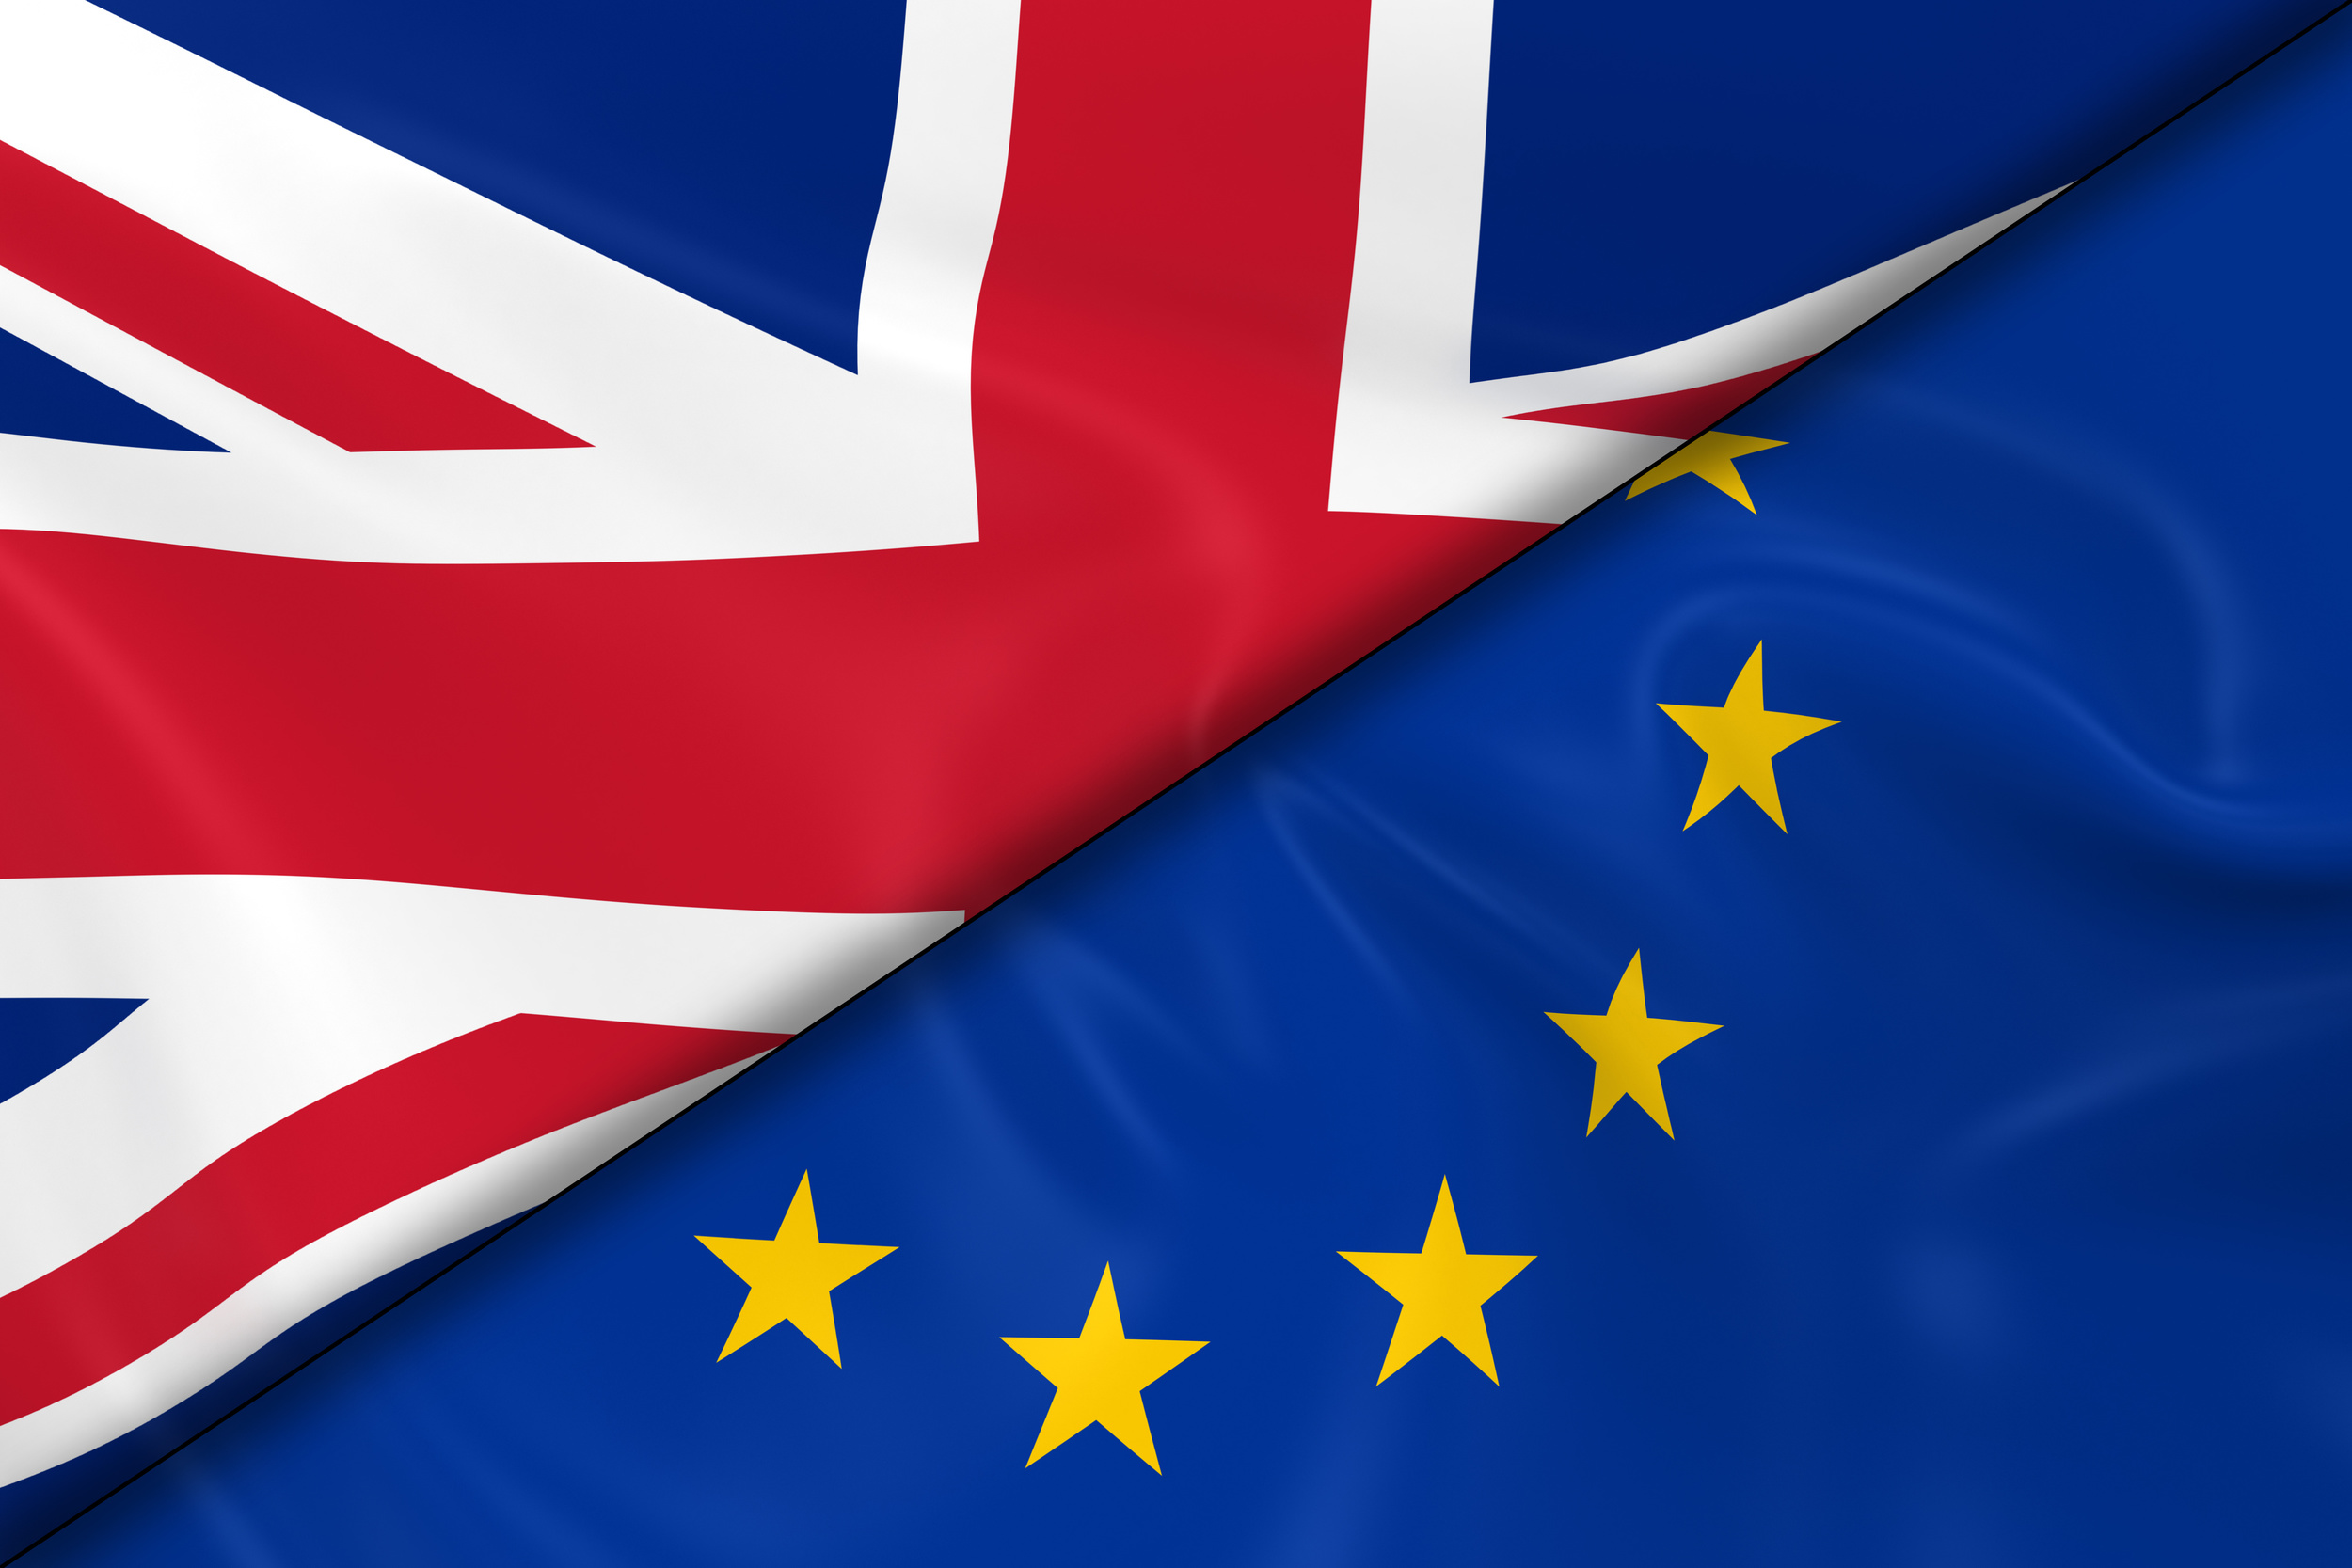 Britain will no longer be a member of the E.U following Thursday's #Brexit referendum - (Adobe Stock Photo)